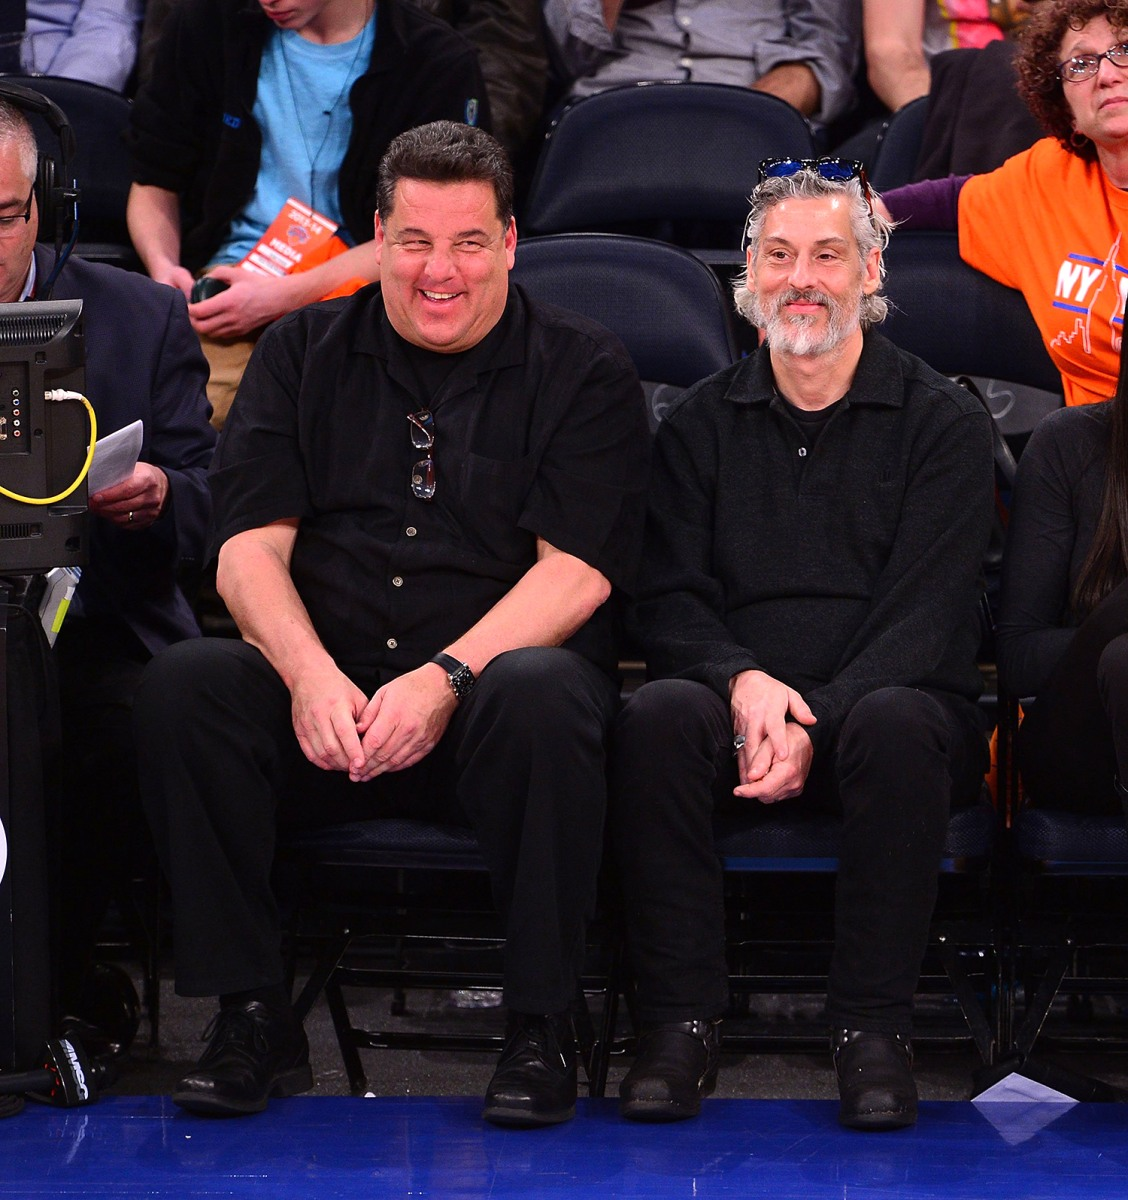 Image: Celebrities Attend The Toronto Raptors Vs New York Knicks Game - April 16, 2014